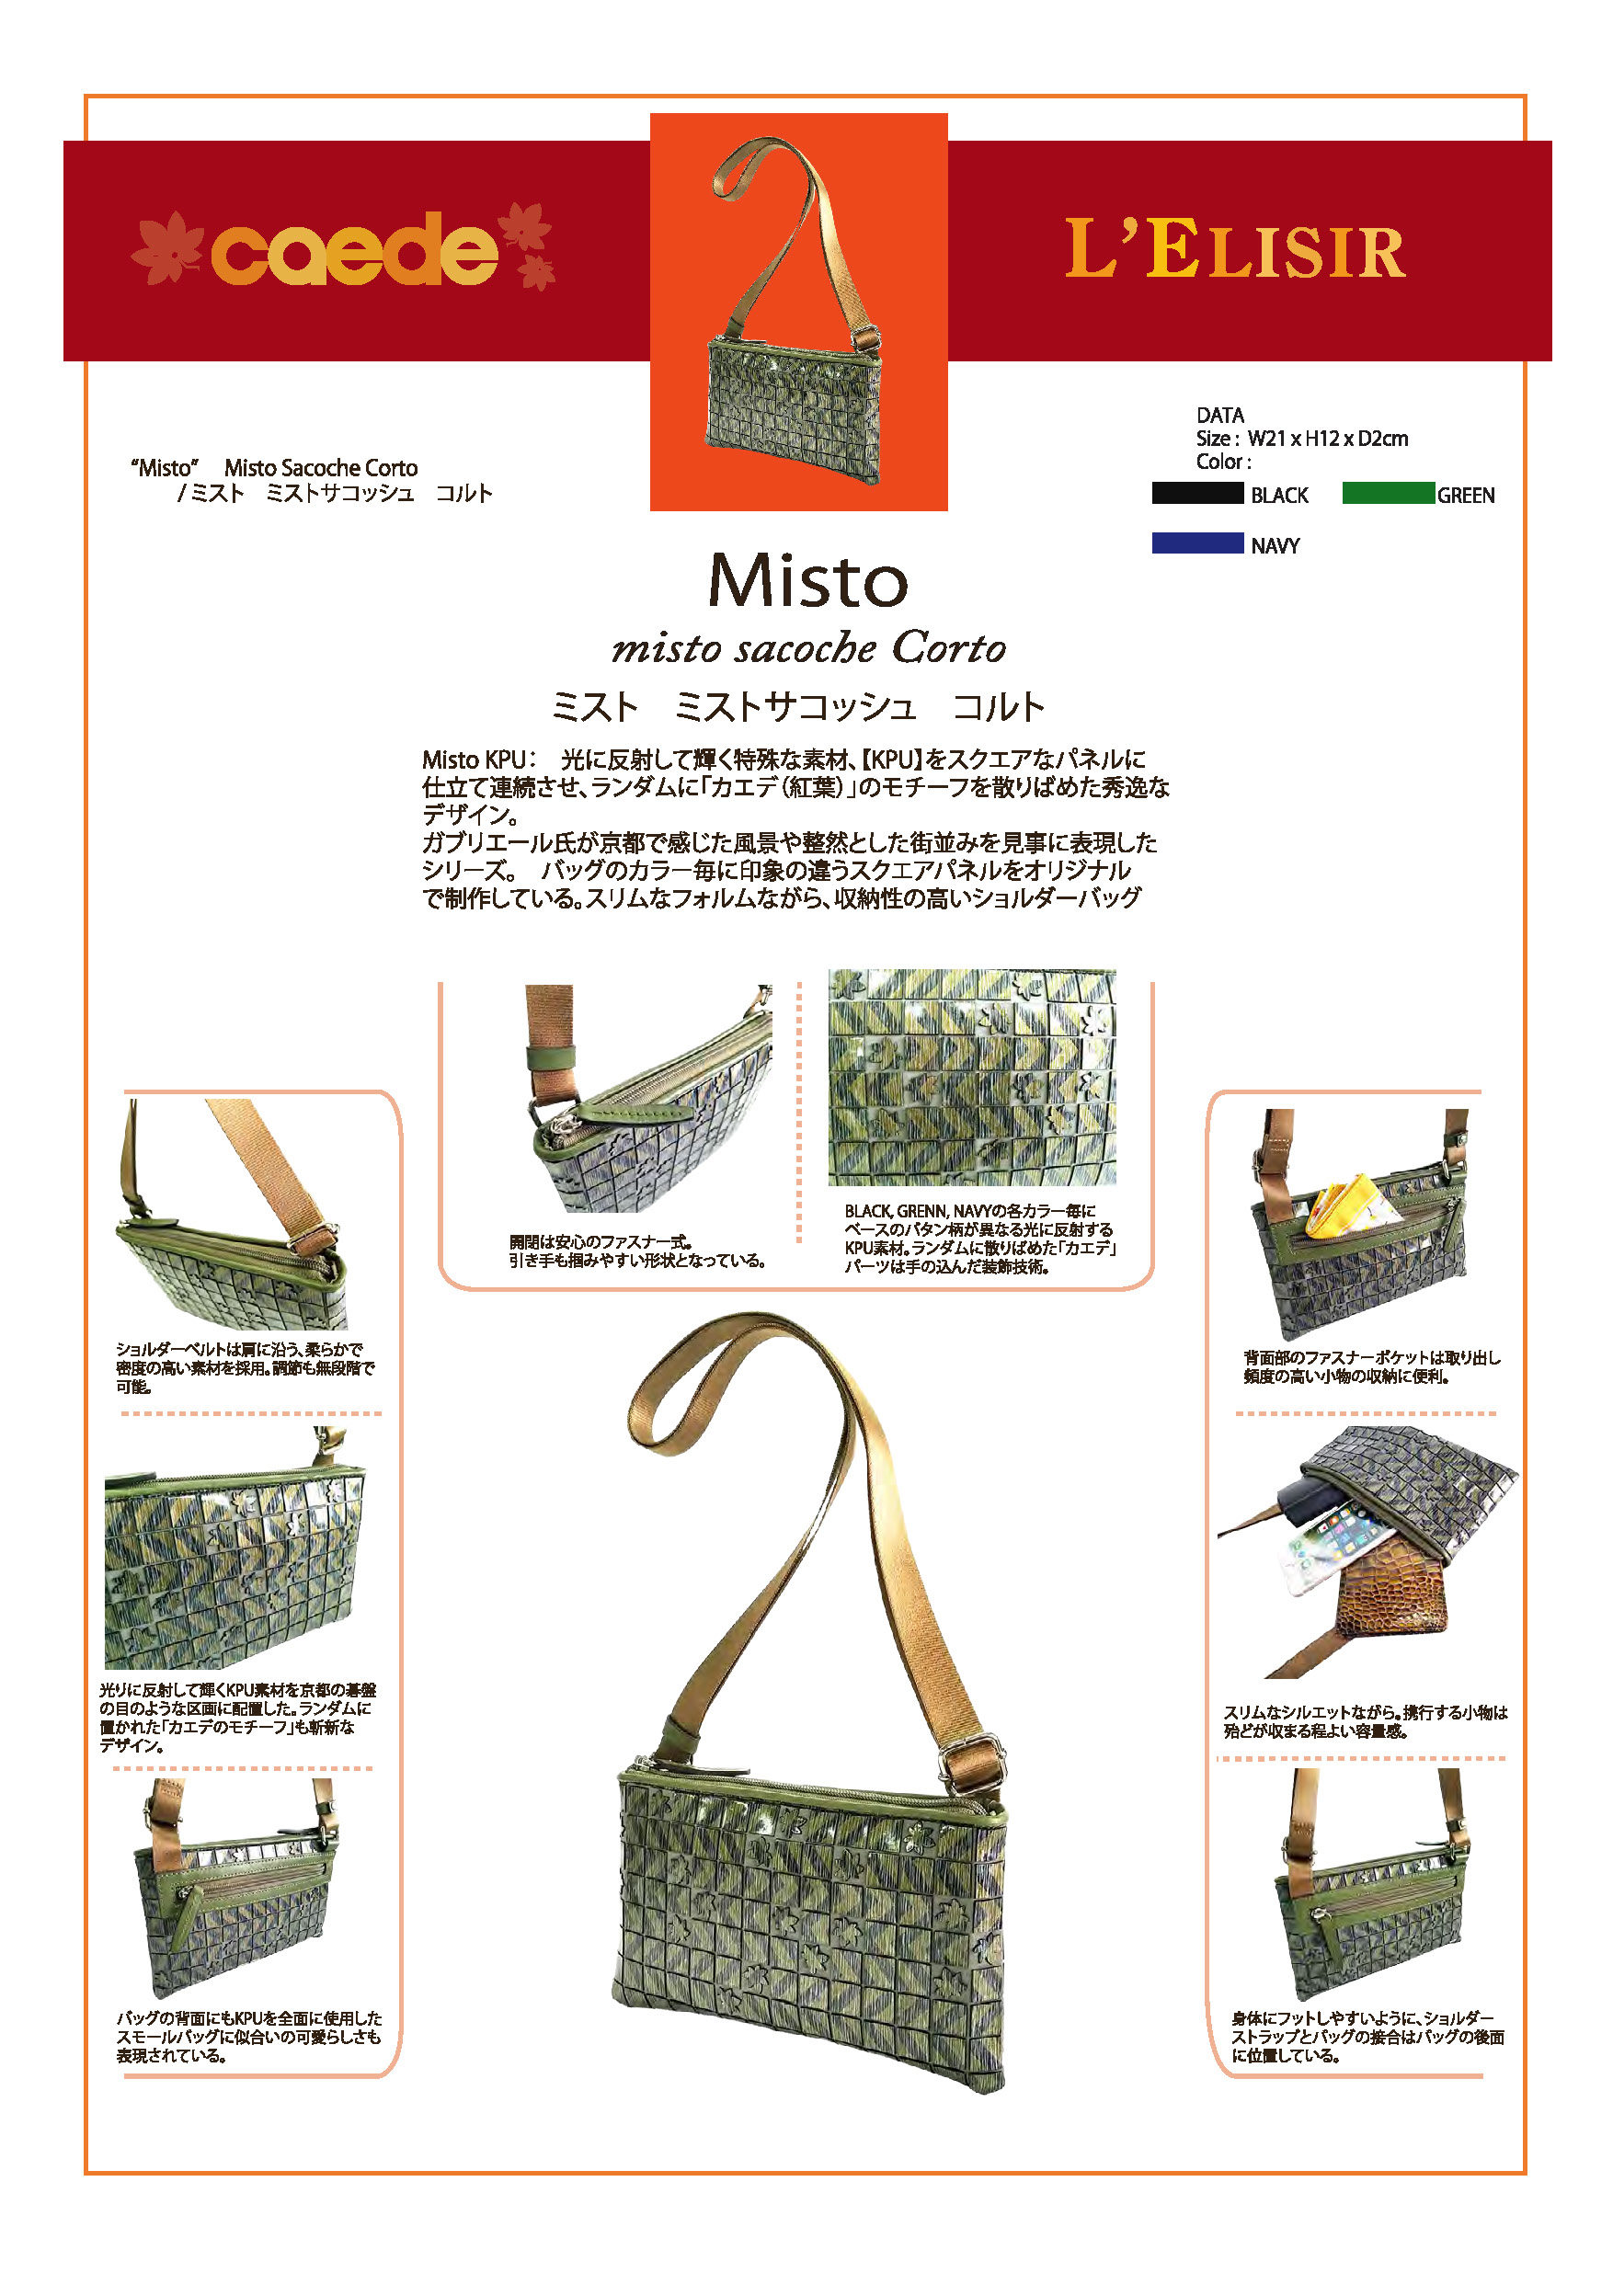 Misto Sacoche Corto | caede京都Collection